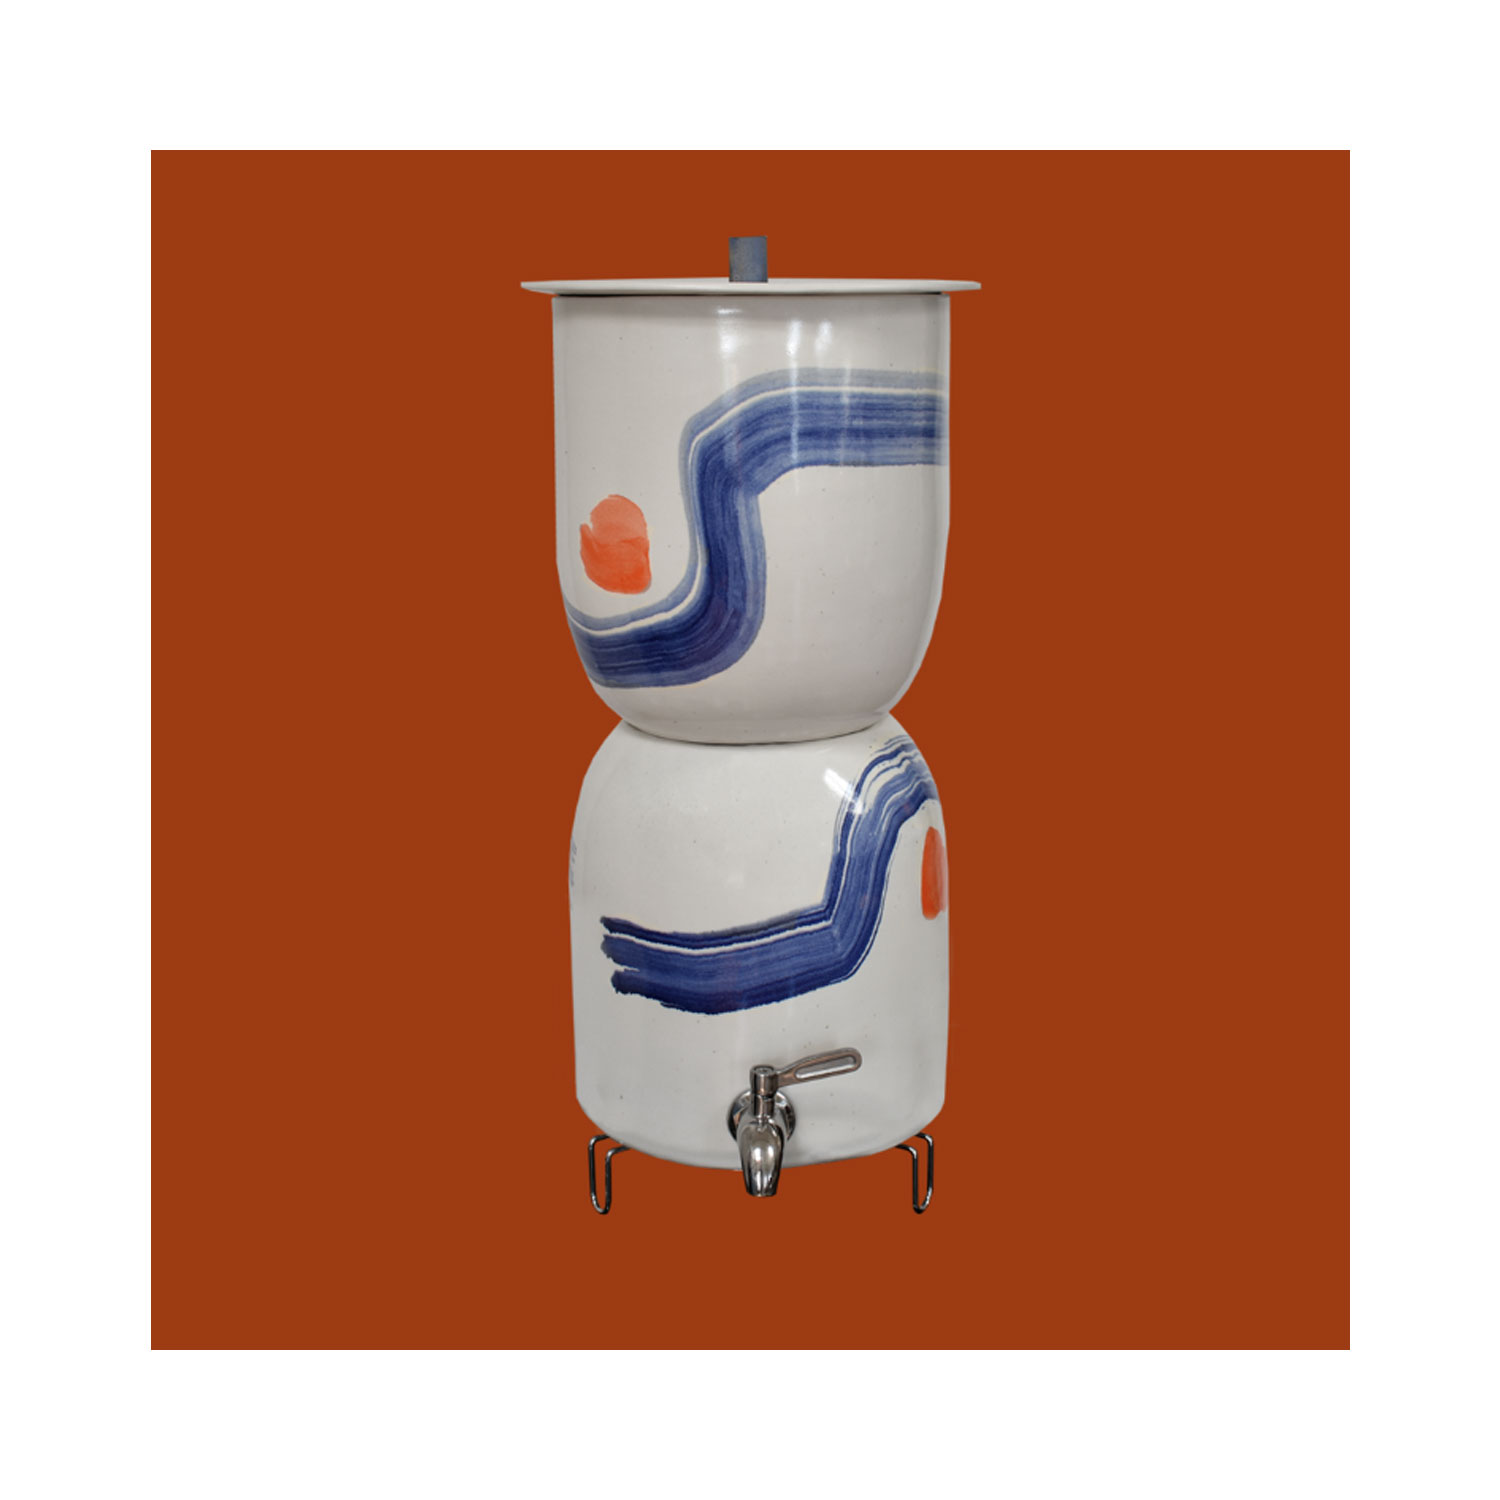 PAINTED WATER FILTER BY WALTER